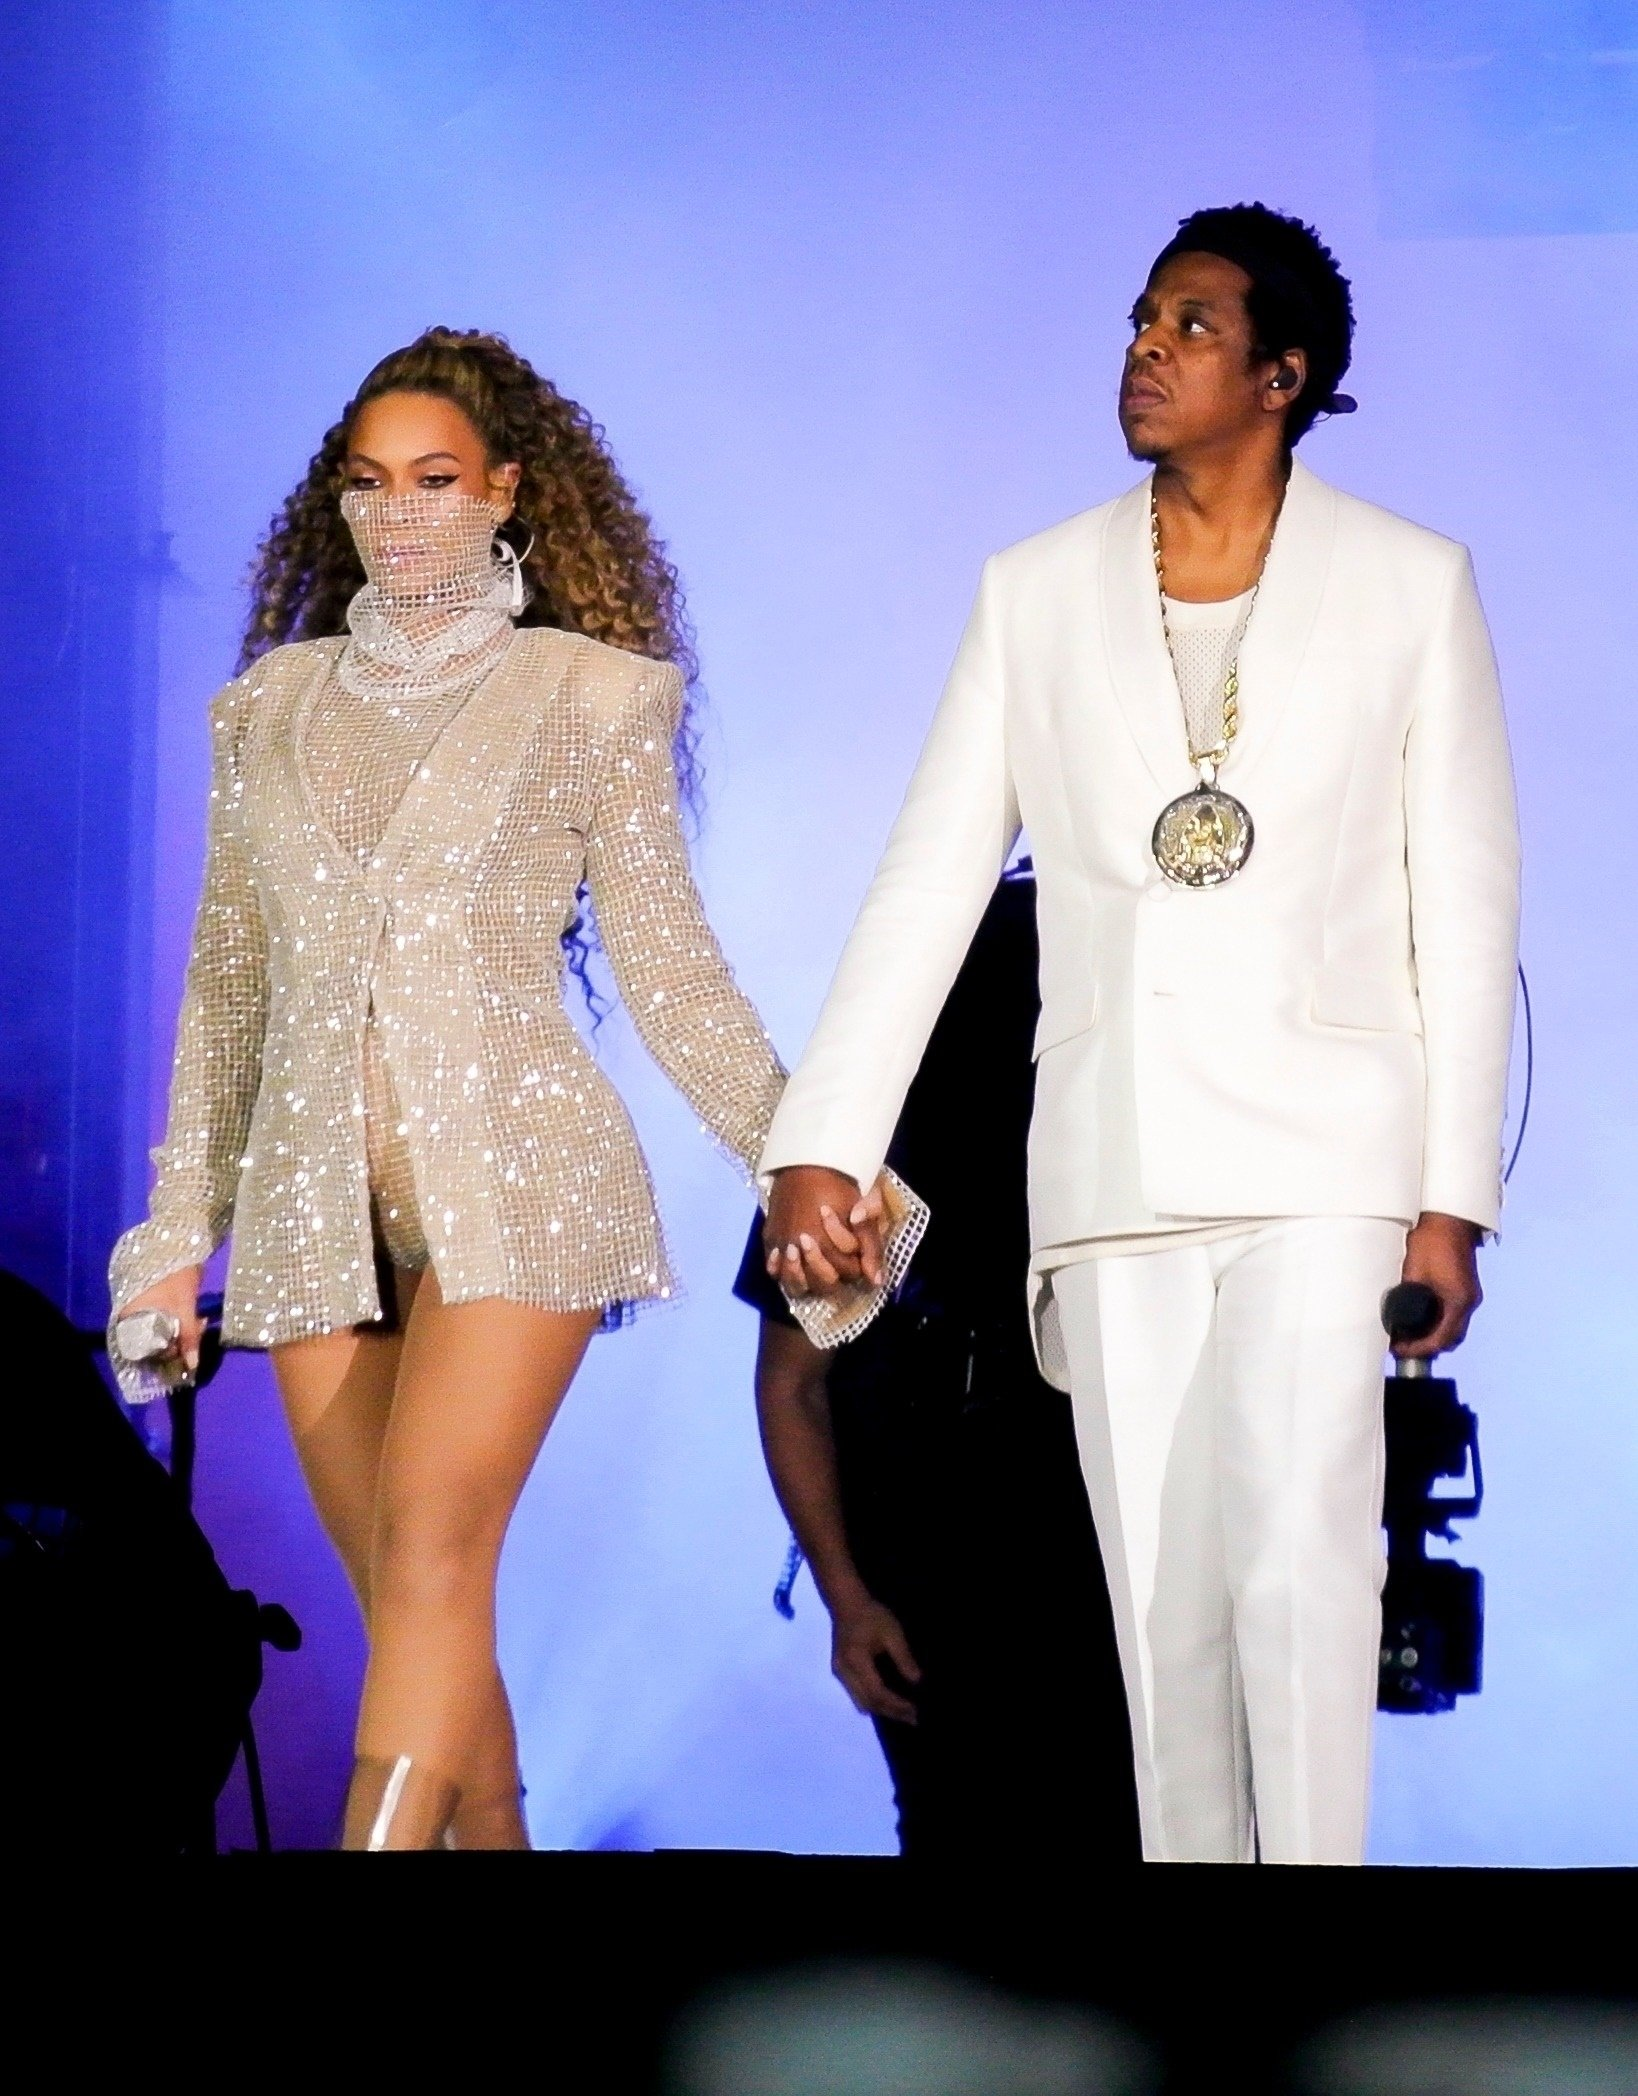 BGUK_1255687 - Cardiff, UNITED KINGDOM  - Beyonce Knowles and Jay Z on stage in concert performing live as they open their On The Run II World tour in Cardiff at the Principality Stadium. Beyonce wore a number of different outfits during her performance.  Pictured: Beyonce Knowles, Jay Z  BACKGRID UK 6 JUNE 2018, Image: 374068484, License: Rights-managed, Restrictions: , Model Release: no, Credit line: Profimedia, Xposurephotos